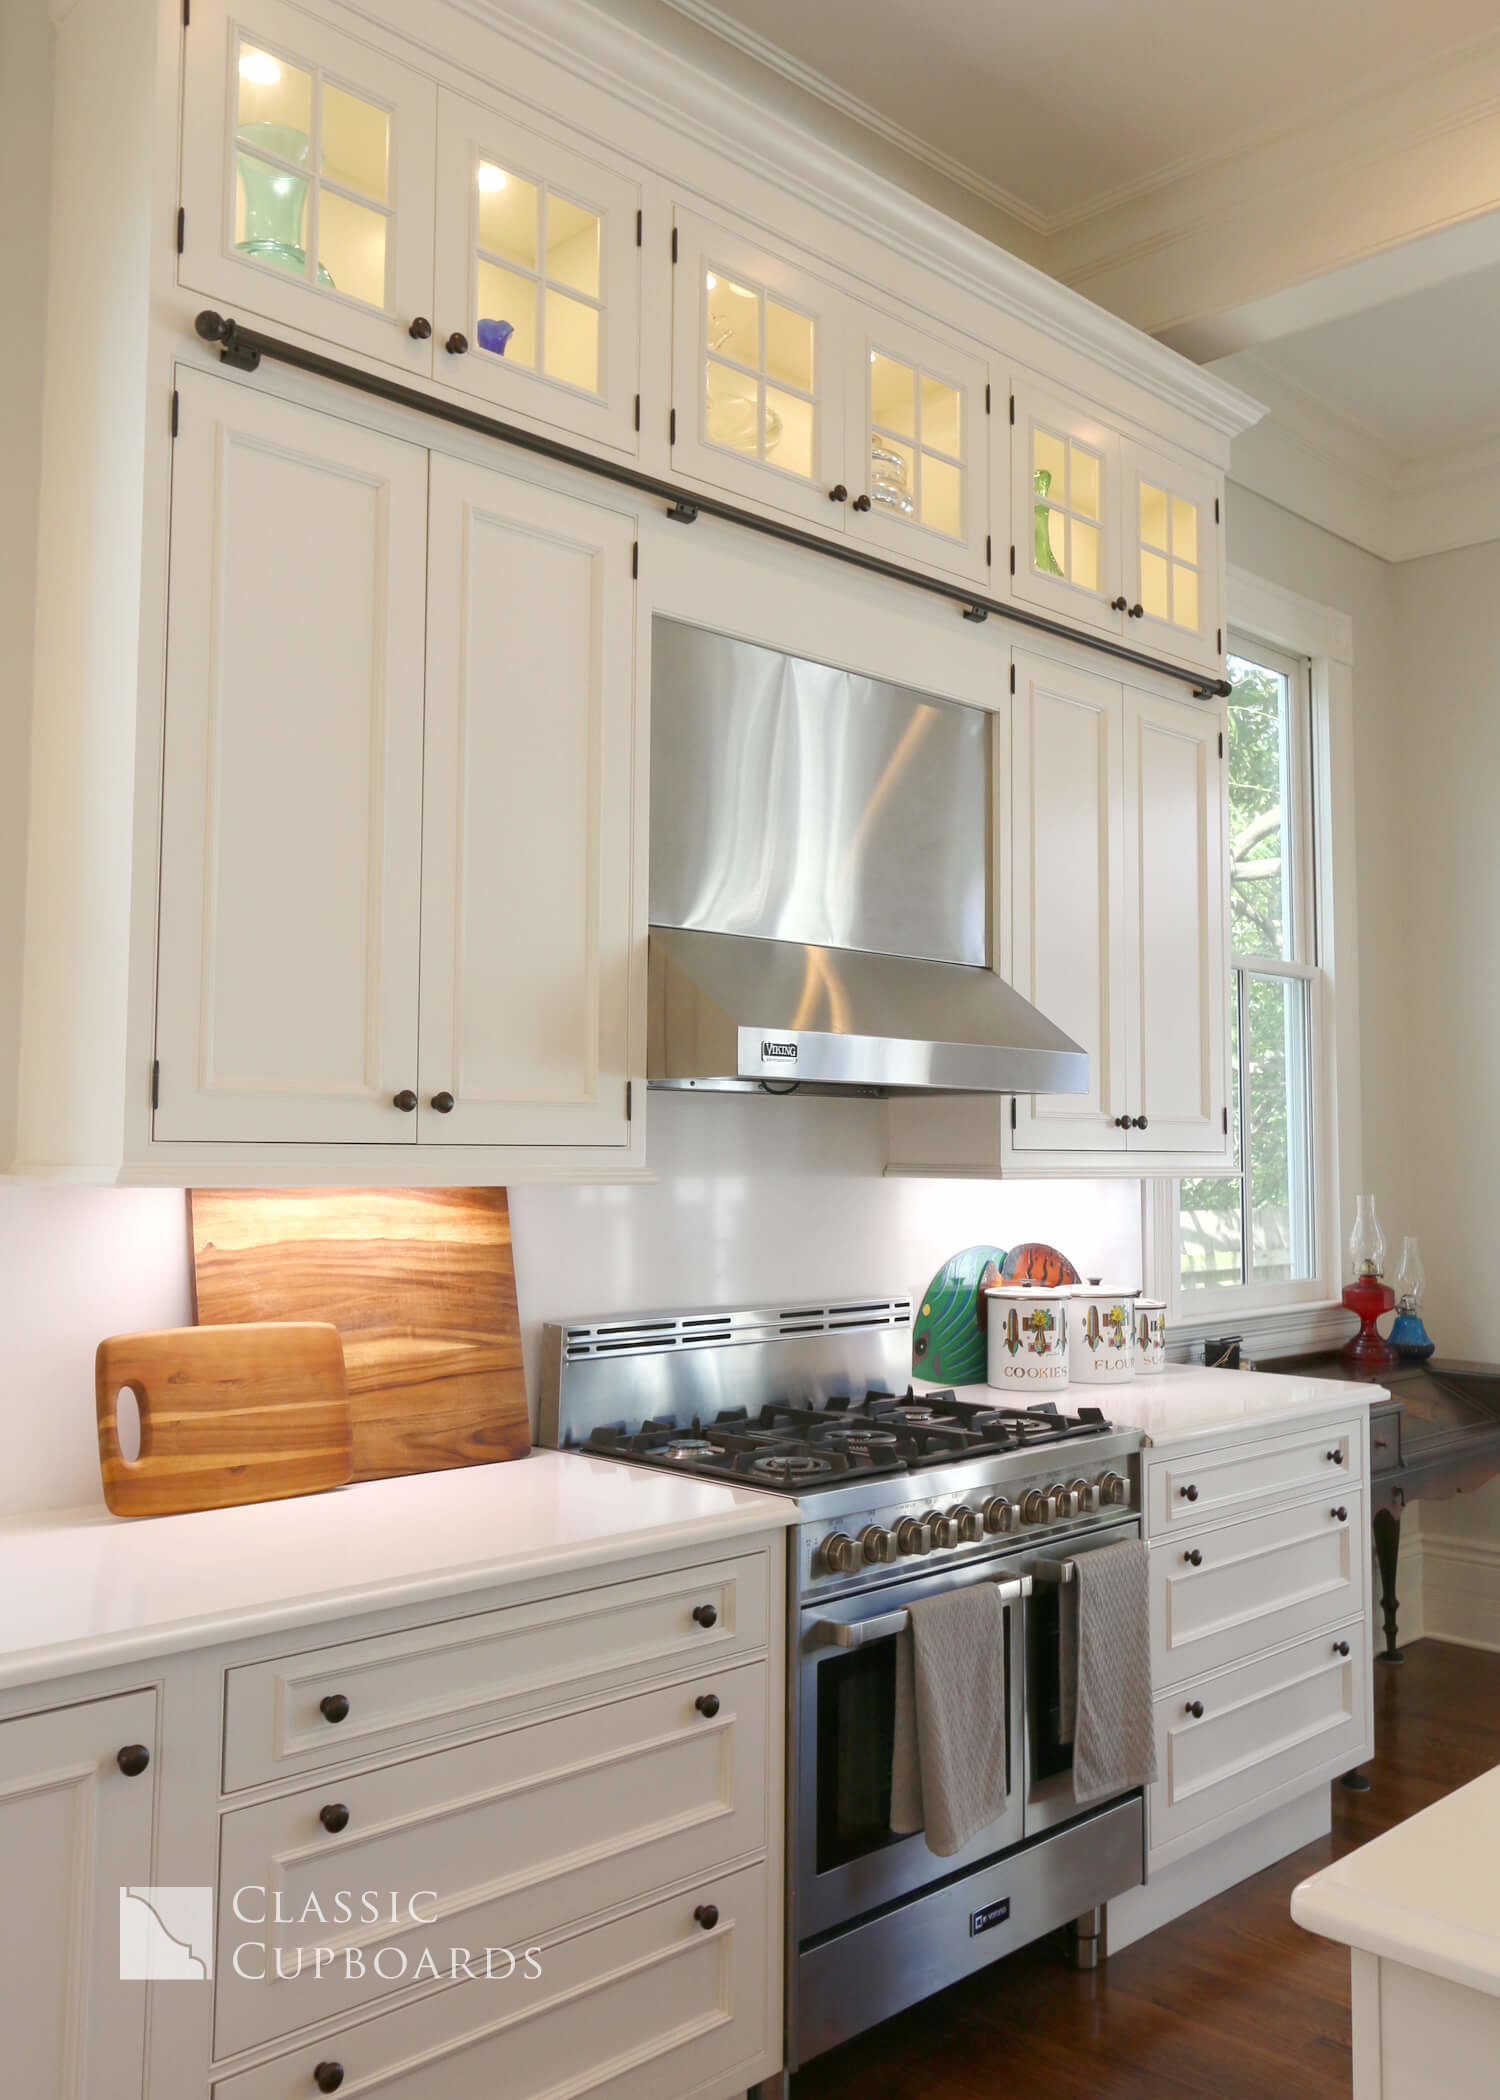 Traditional Kitchen stove and cabinets